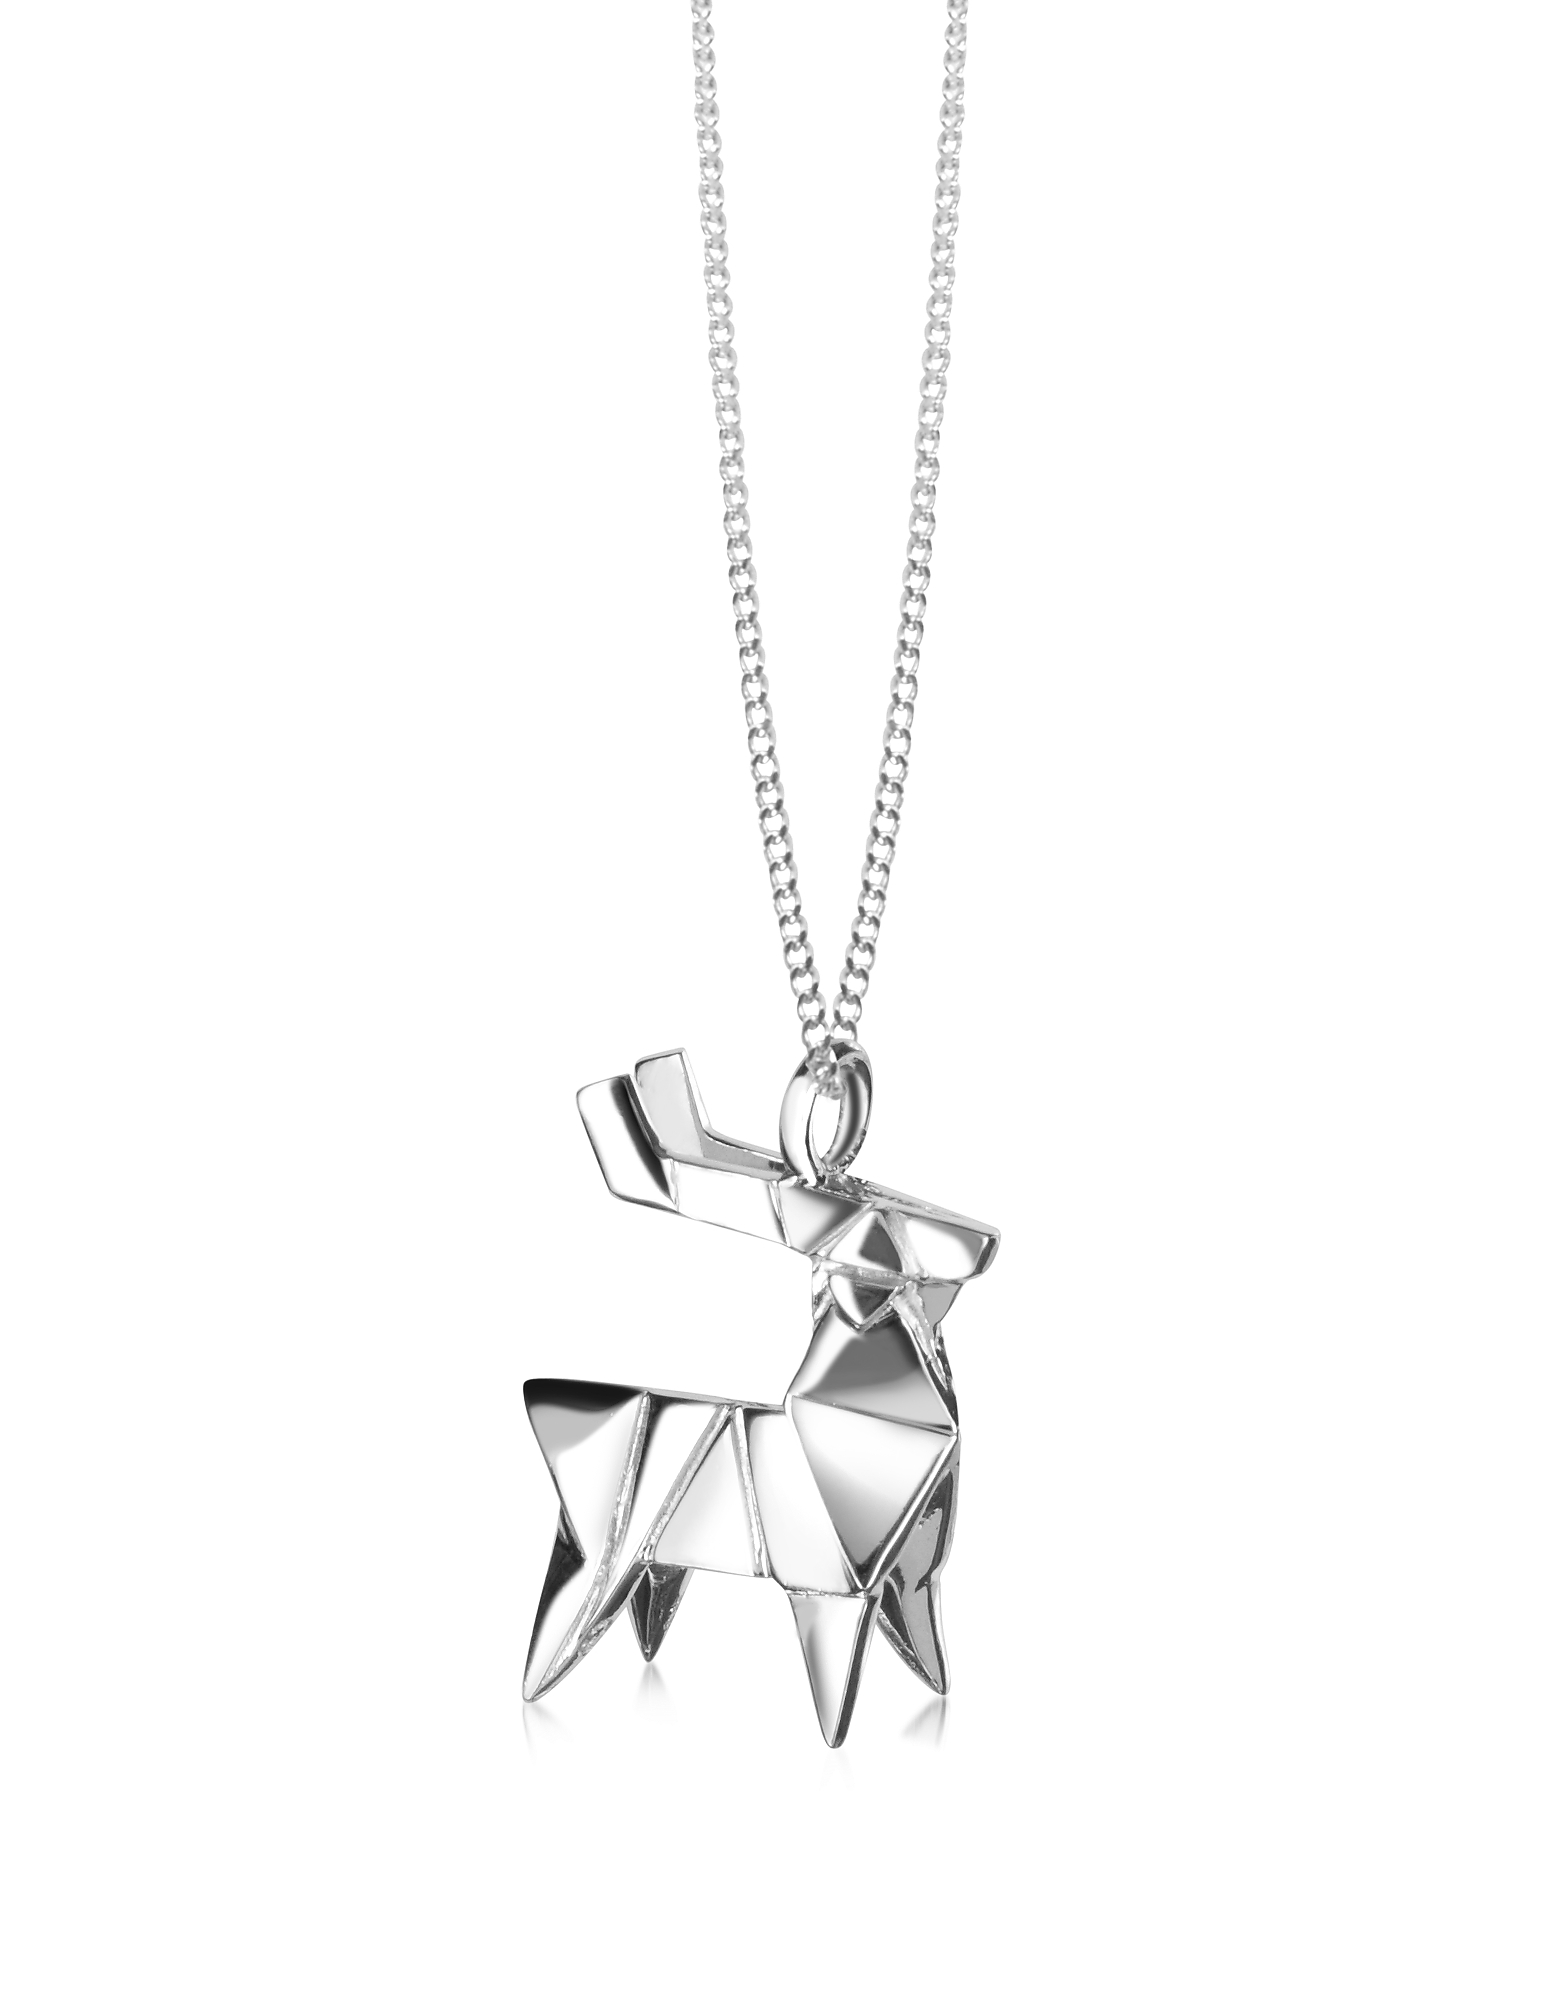 Origami Necklaces, Sterling Silver Deer Pendant Necklace